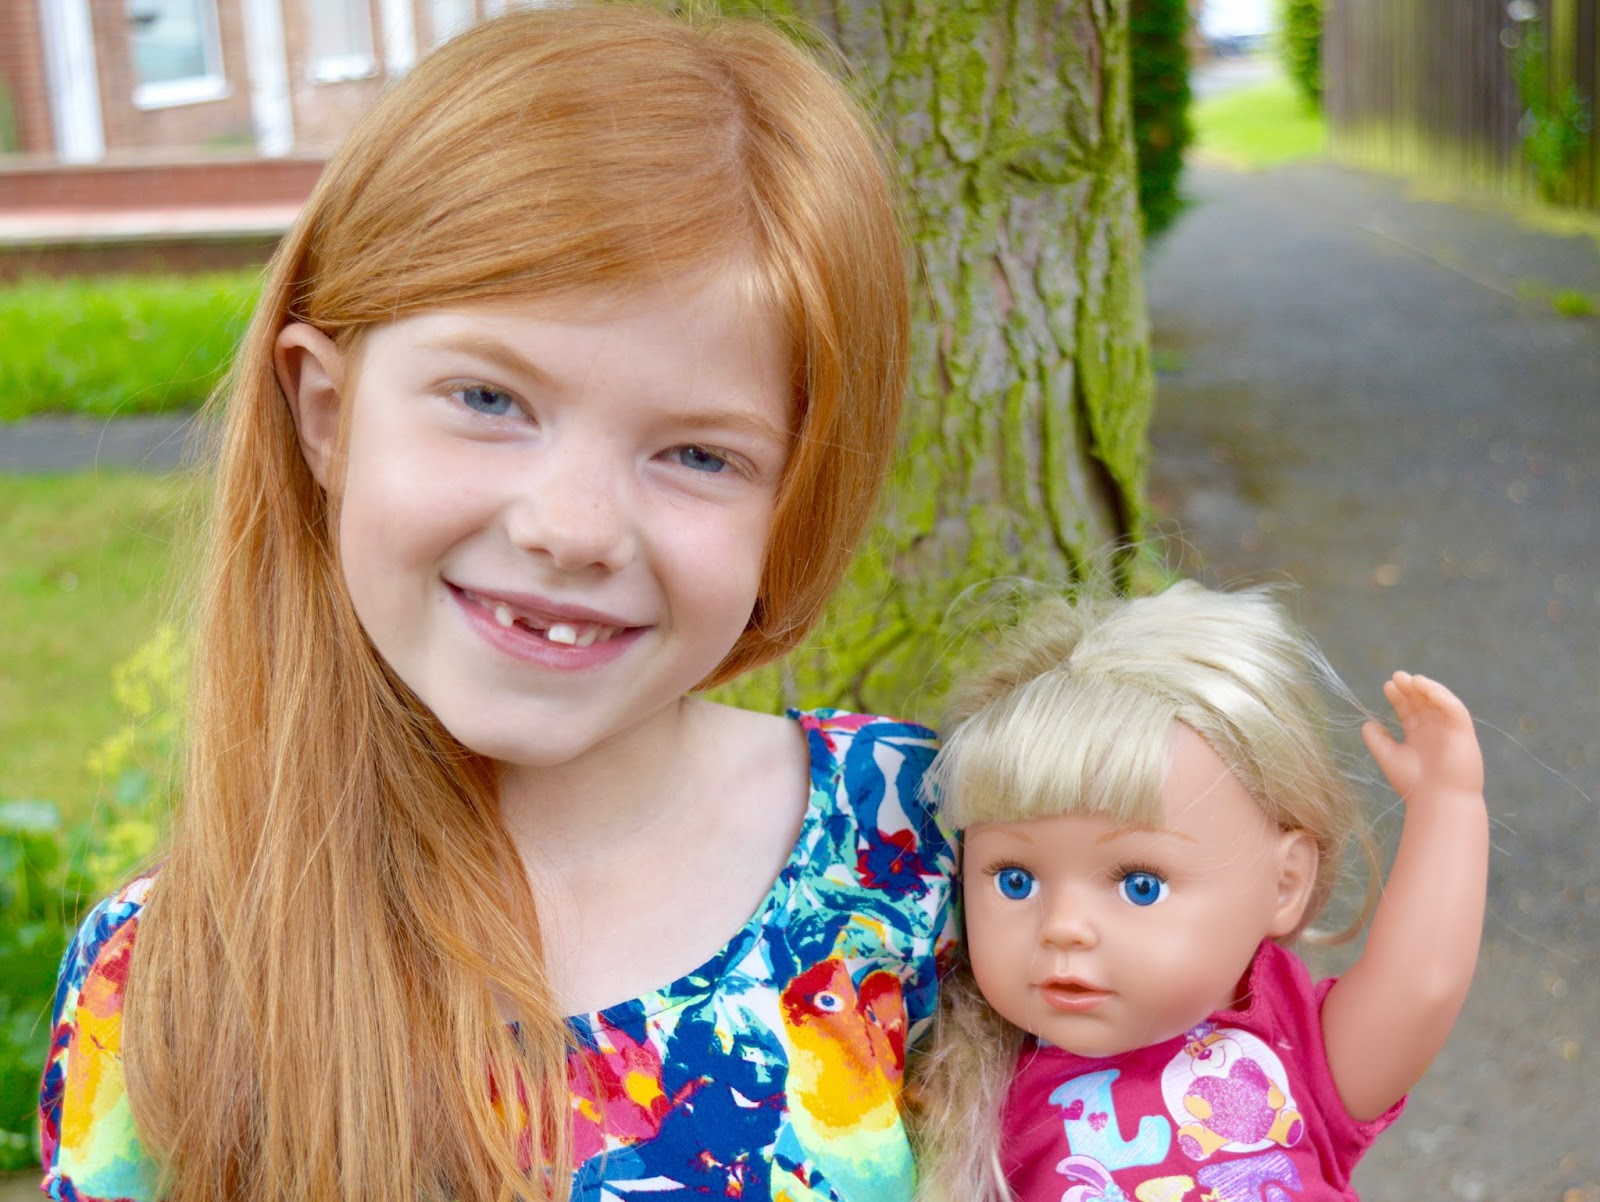 Heidi celebrates #nationalsistersday with her brand new Baby Born Sister Doll